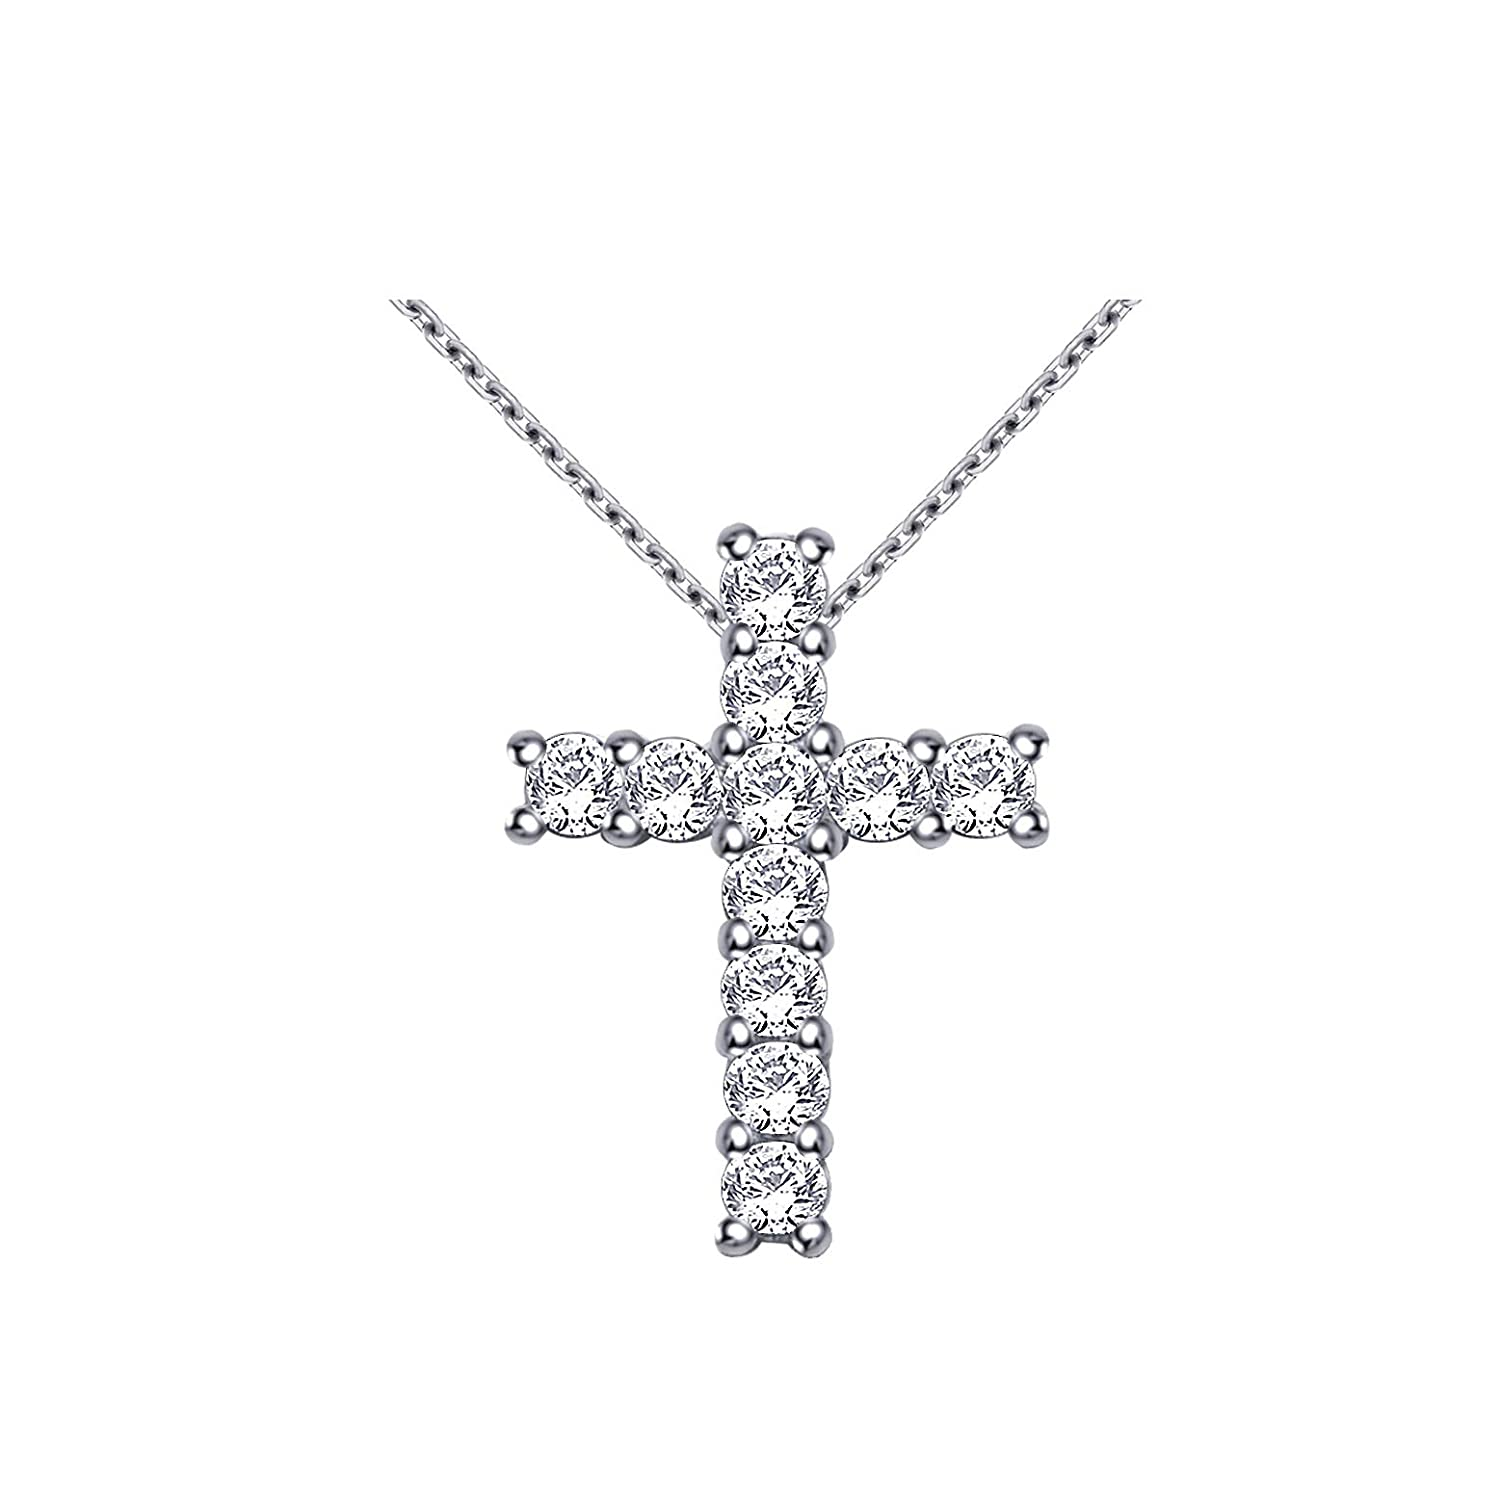 Ringjewels 0.95 Carat Classic Simulated Diamond Cross Pendant with 18 Chain in 14K White Gold Plated